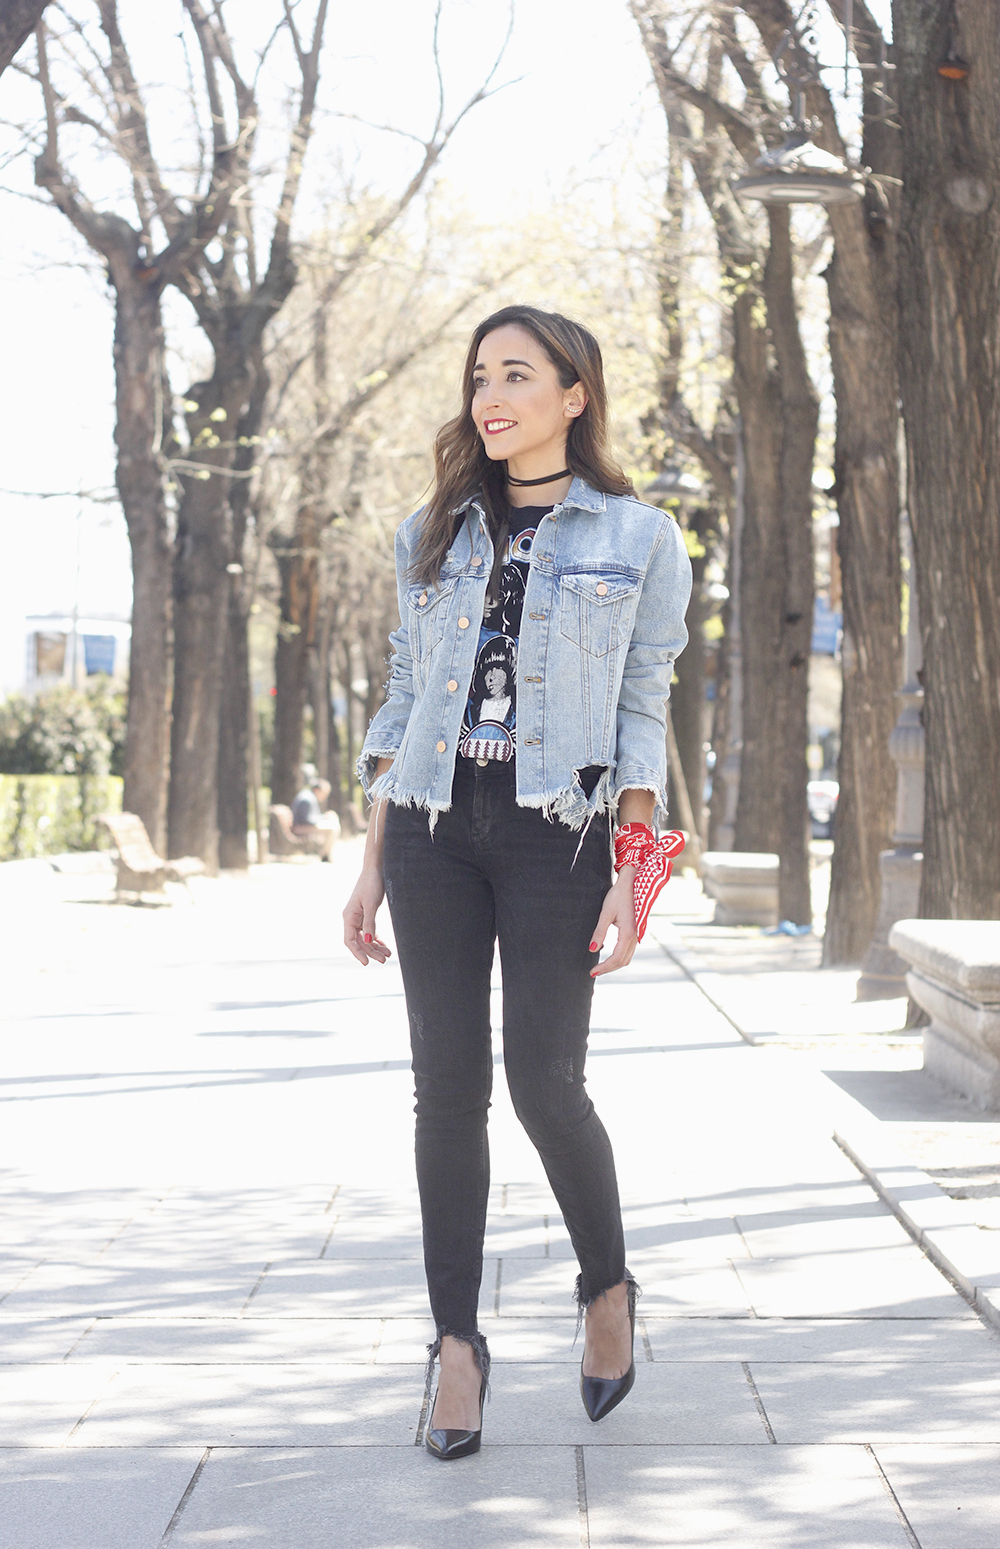 Ripped denim jacket black jeans ramones t-shirt heels style outfit fashion06